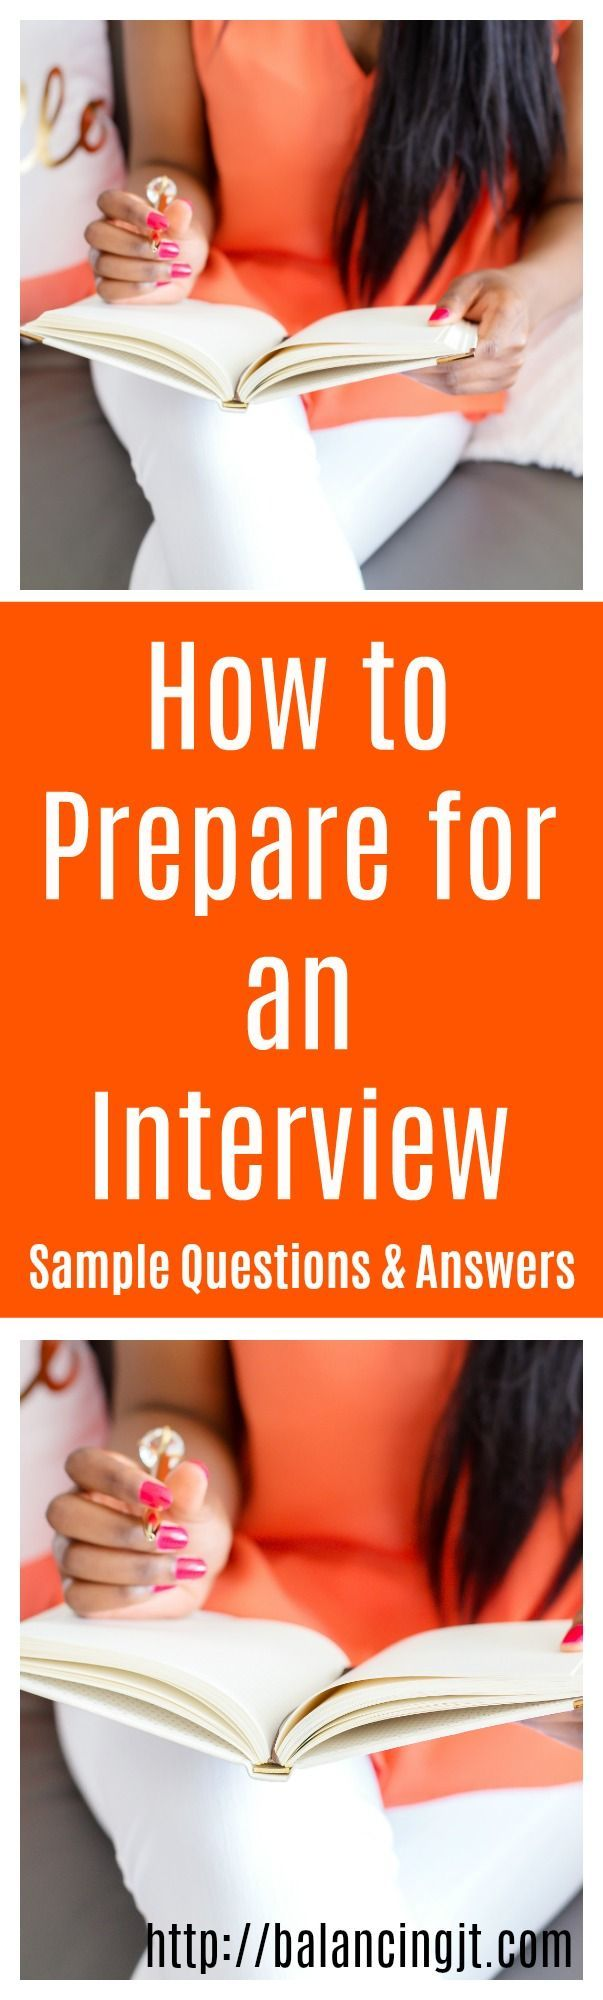 How to prepare for an interview tips